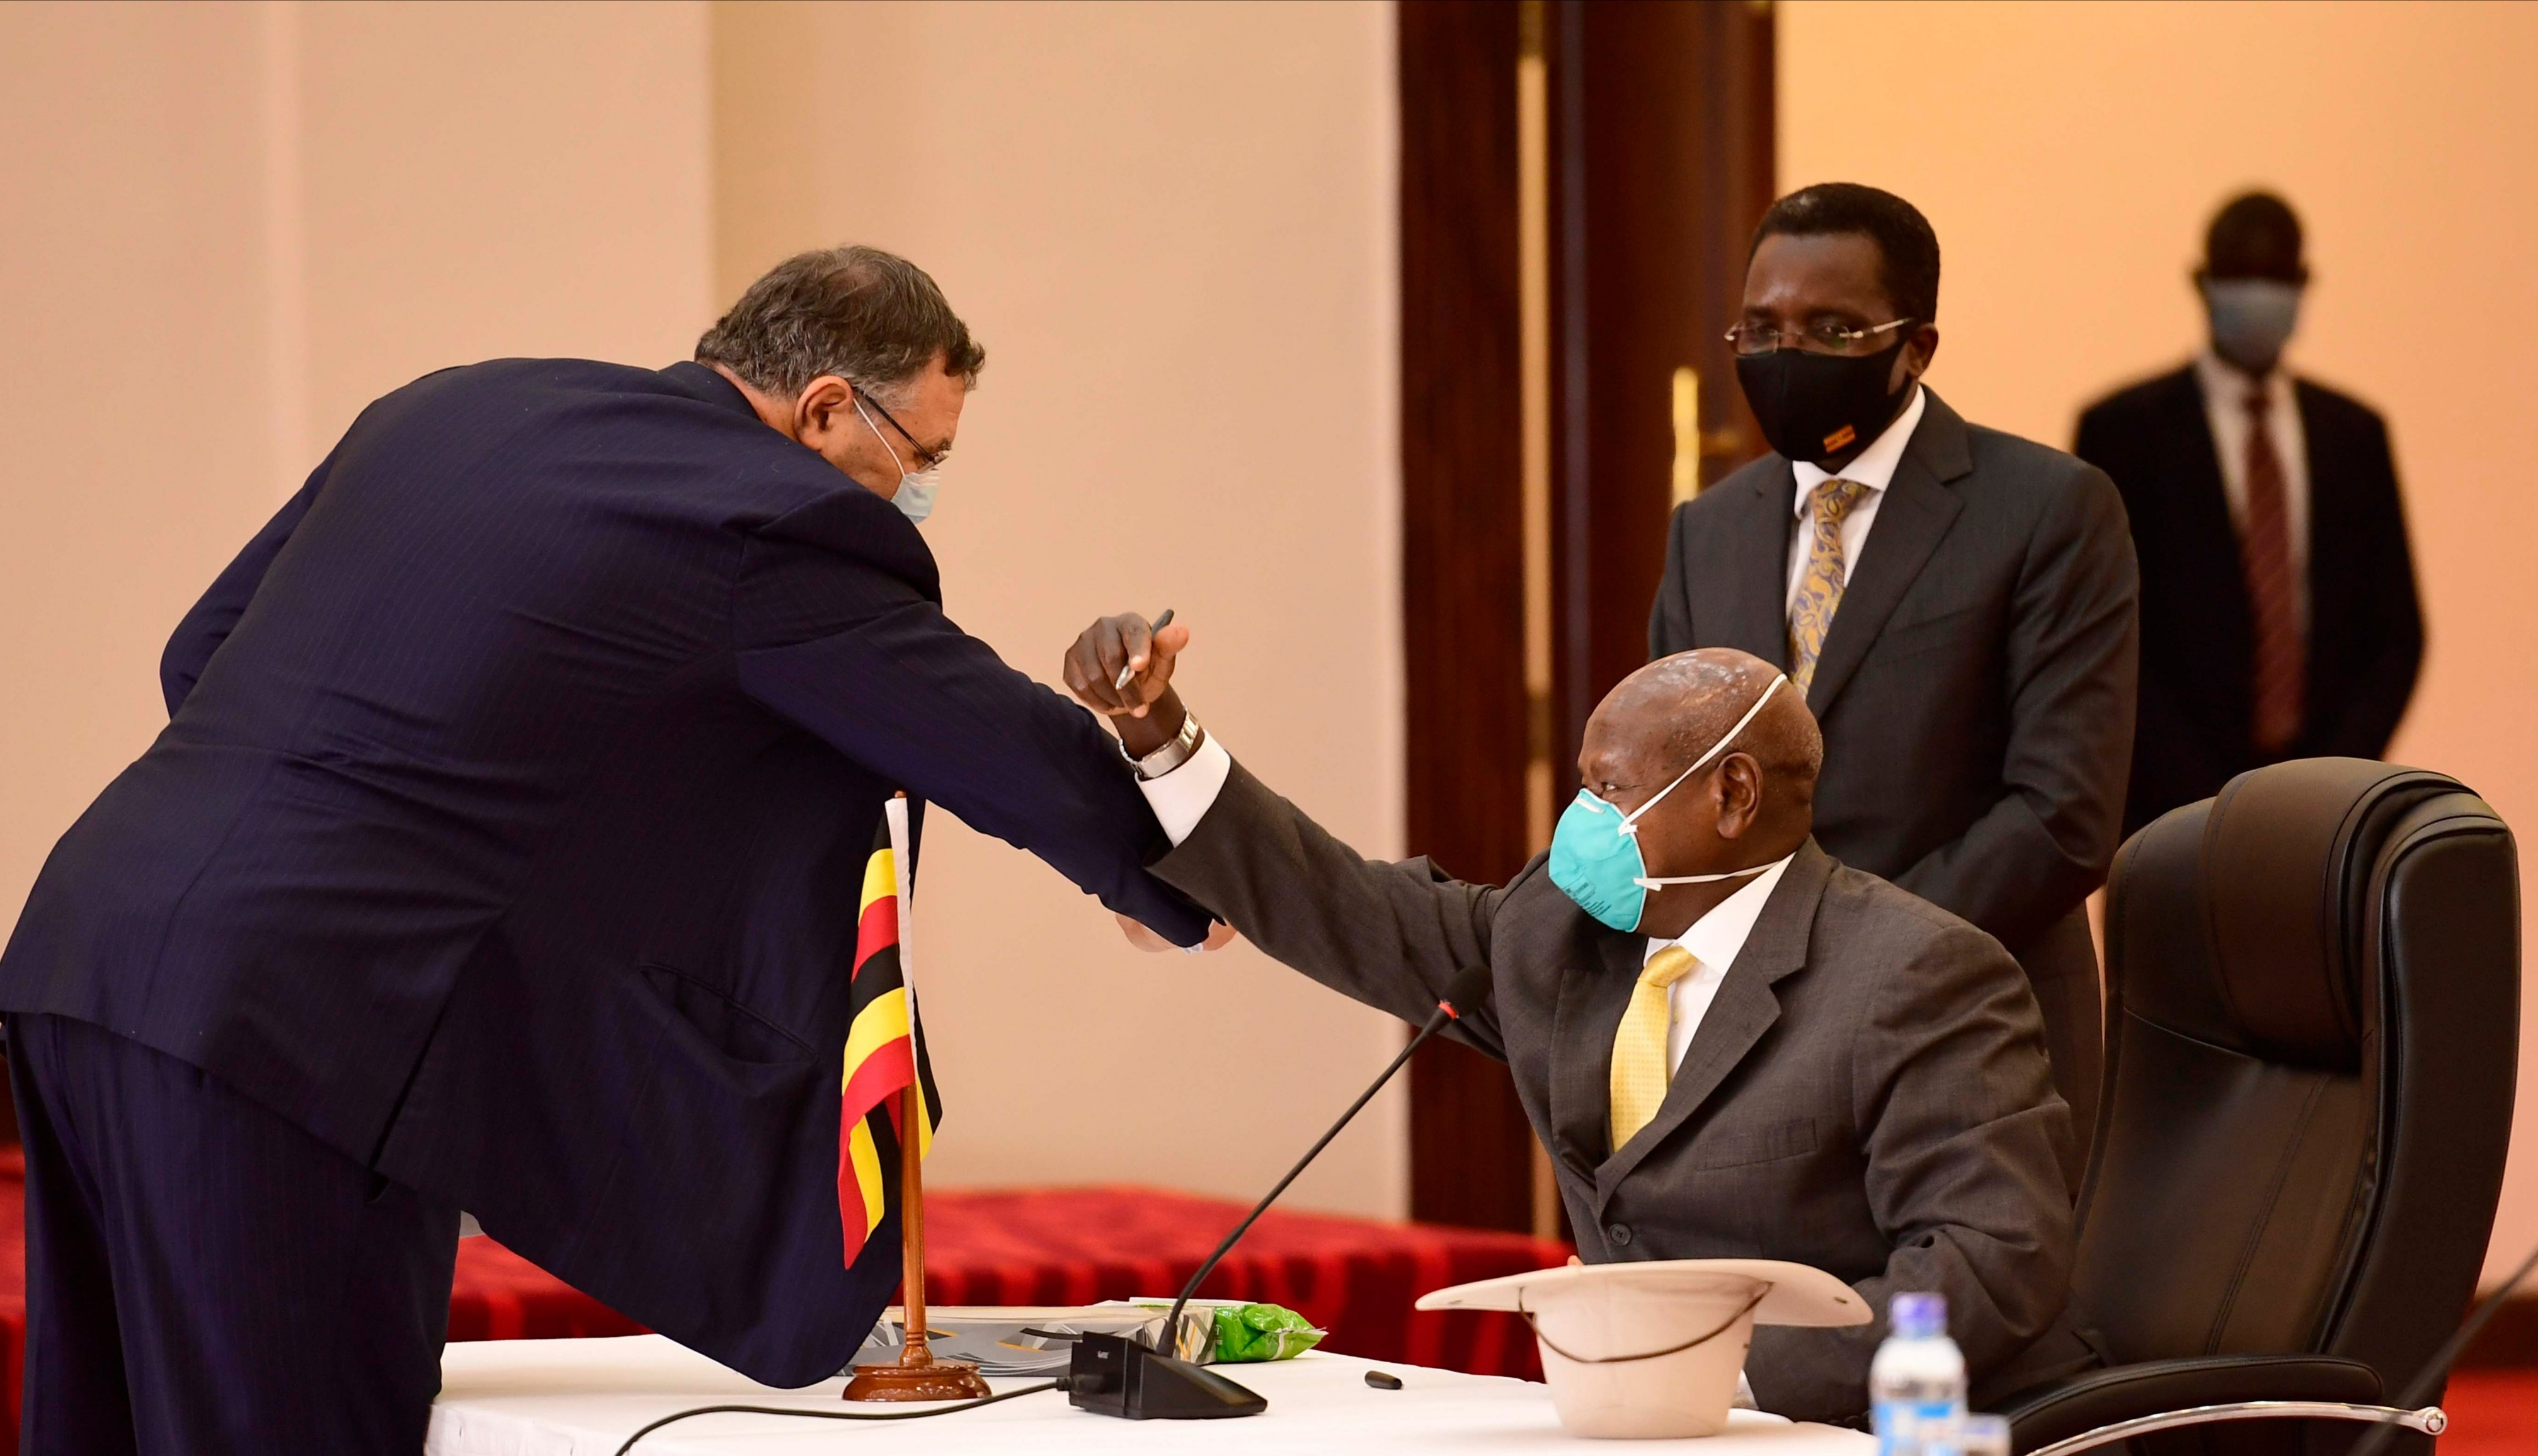 Total E&P President and Chief Executive Officer Patrick Pouyanne greets President Yoweri Museveni during the signing of three key oil and gas agreements